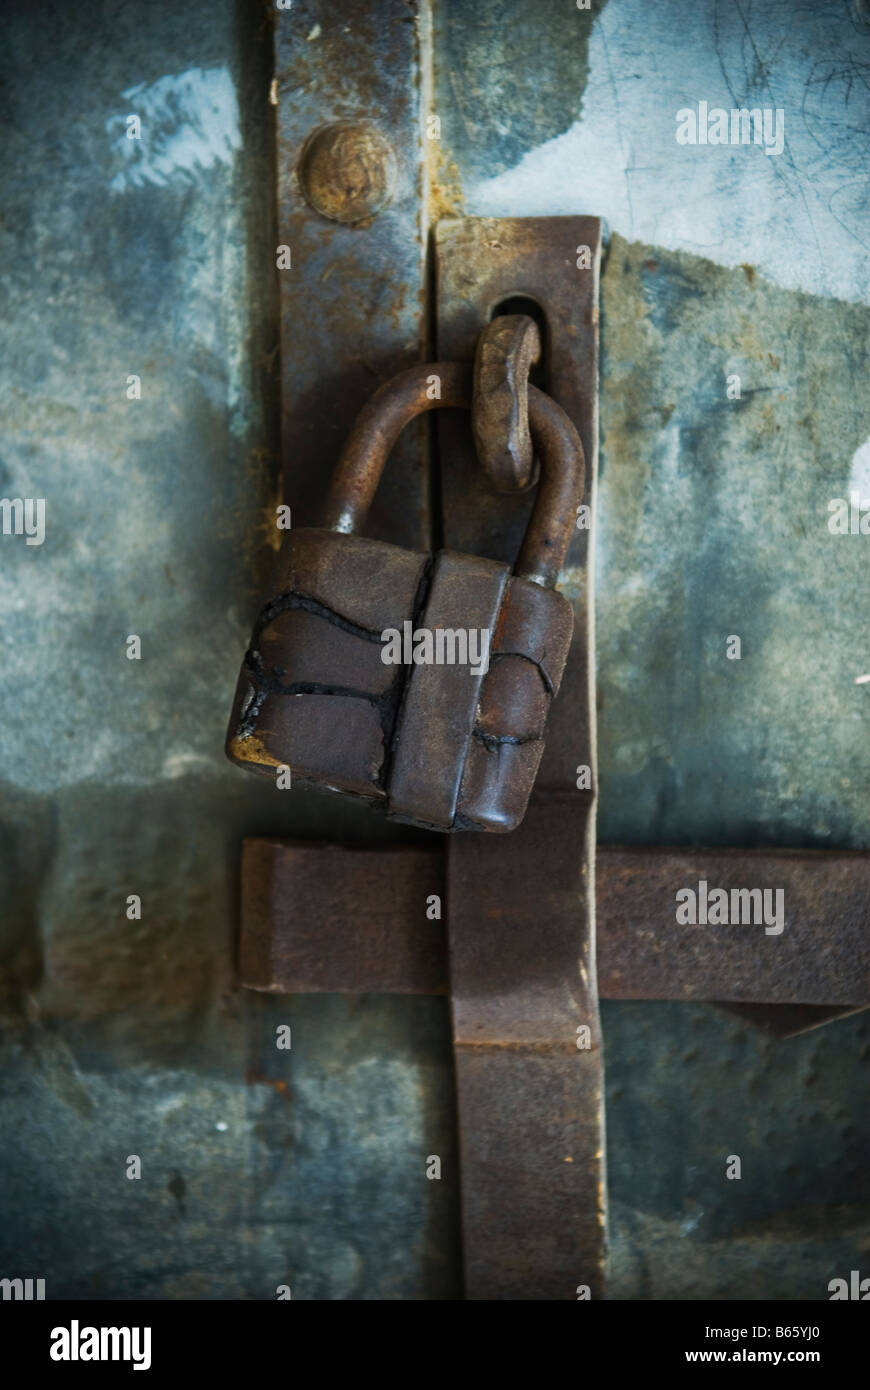 Rusty robust metal lock - Stock Image